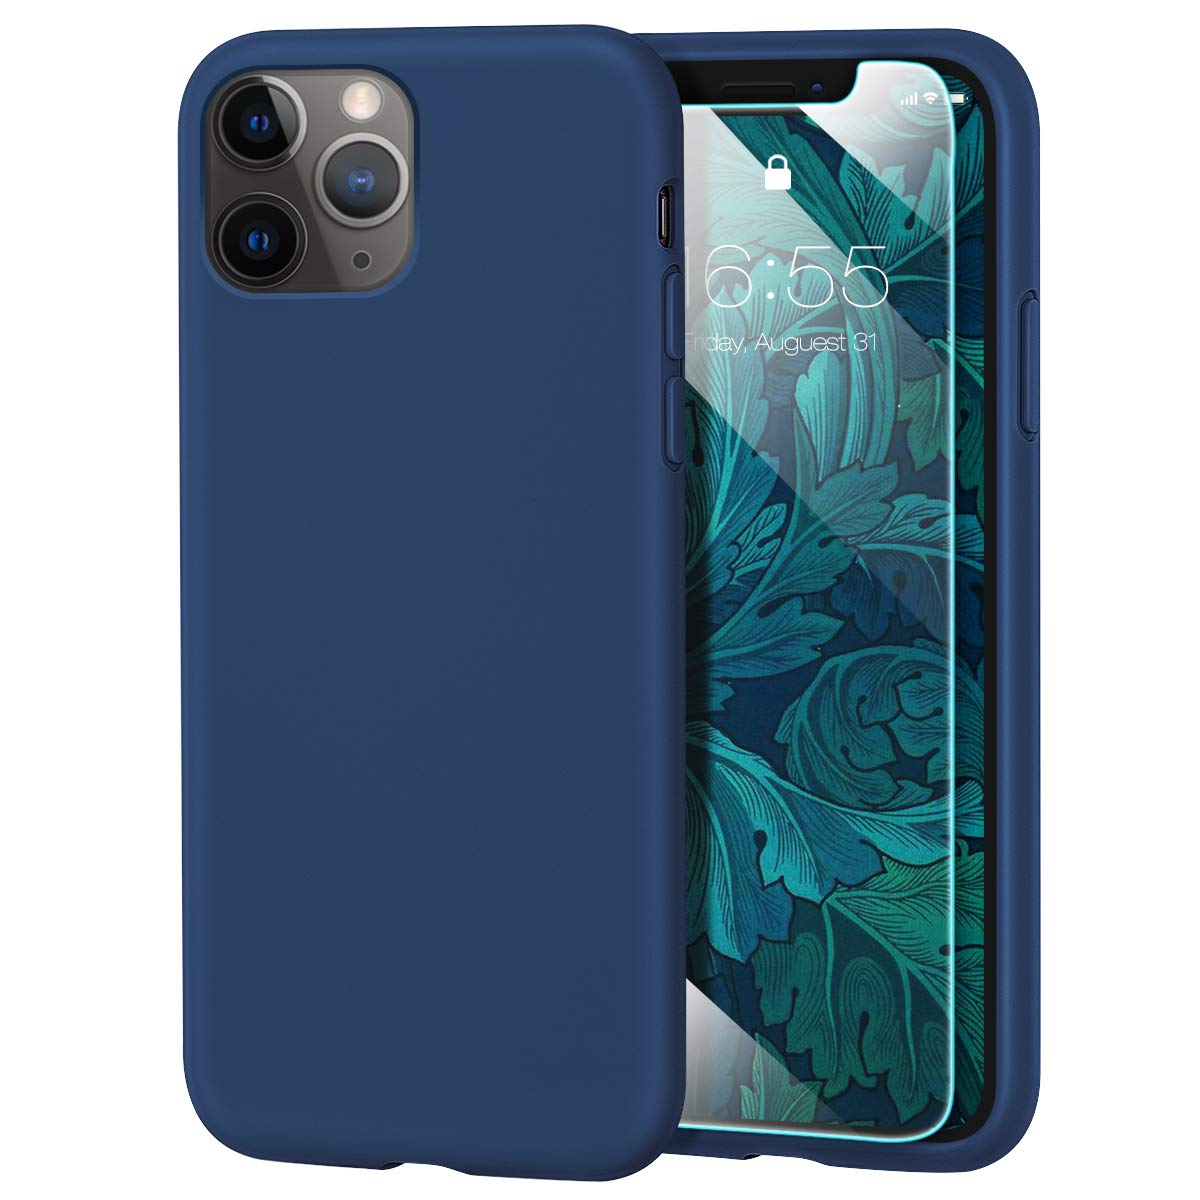 MILPROX iPhone 11 Pro Max Case with Screen Protector, Liquid Silicone Gel Rubber Shockproof Slim Shell, Soft Microfiber Cloth Lining Cushion Cover for iPhone 11 Pro Max 6.5 inch (2019)-Blue Horizon